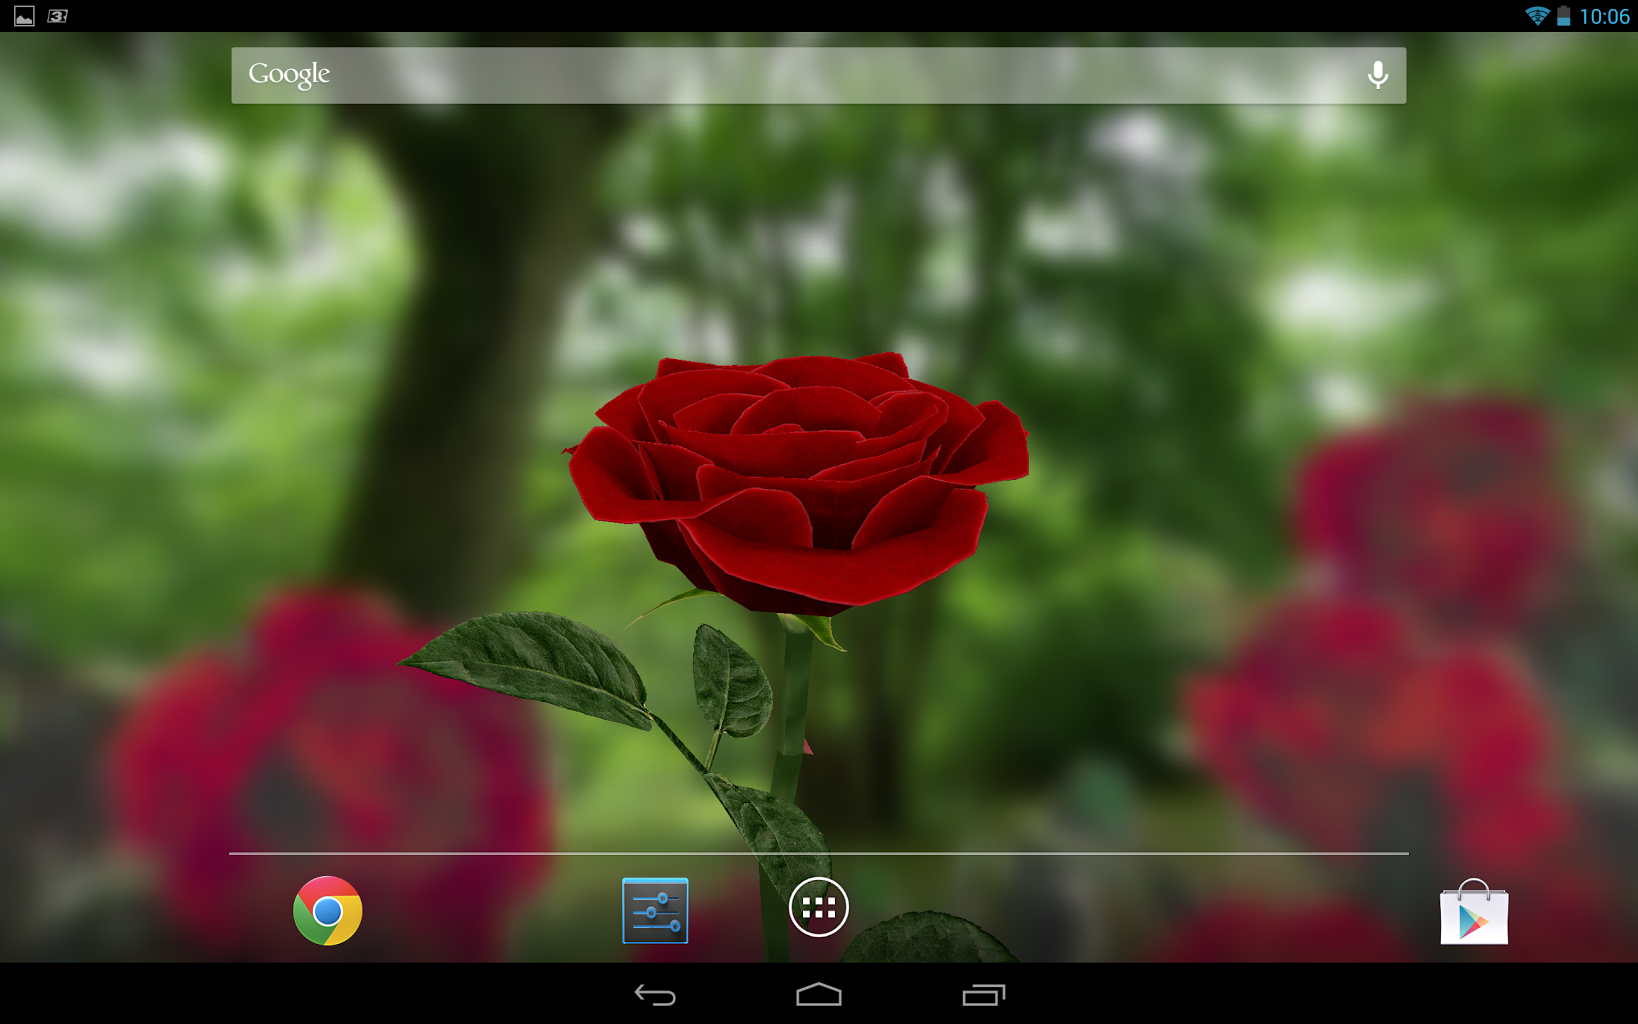 3D Rose Live Wallpaper 40 screenshot 3 1638x1024